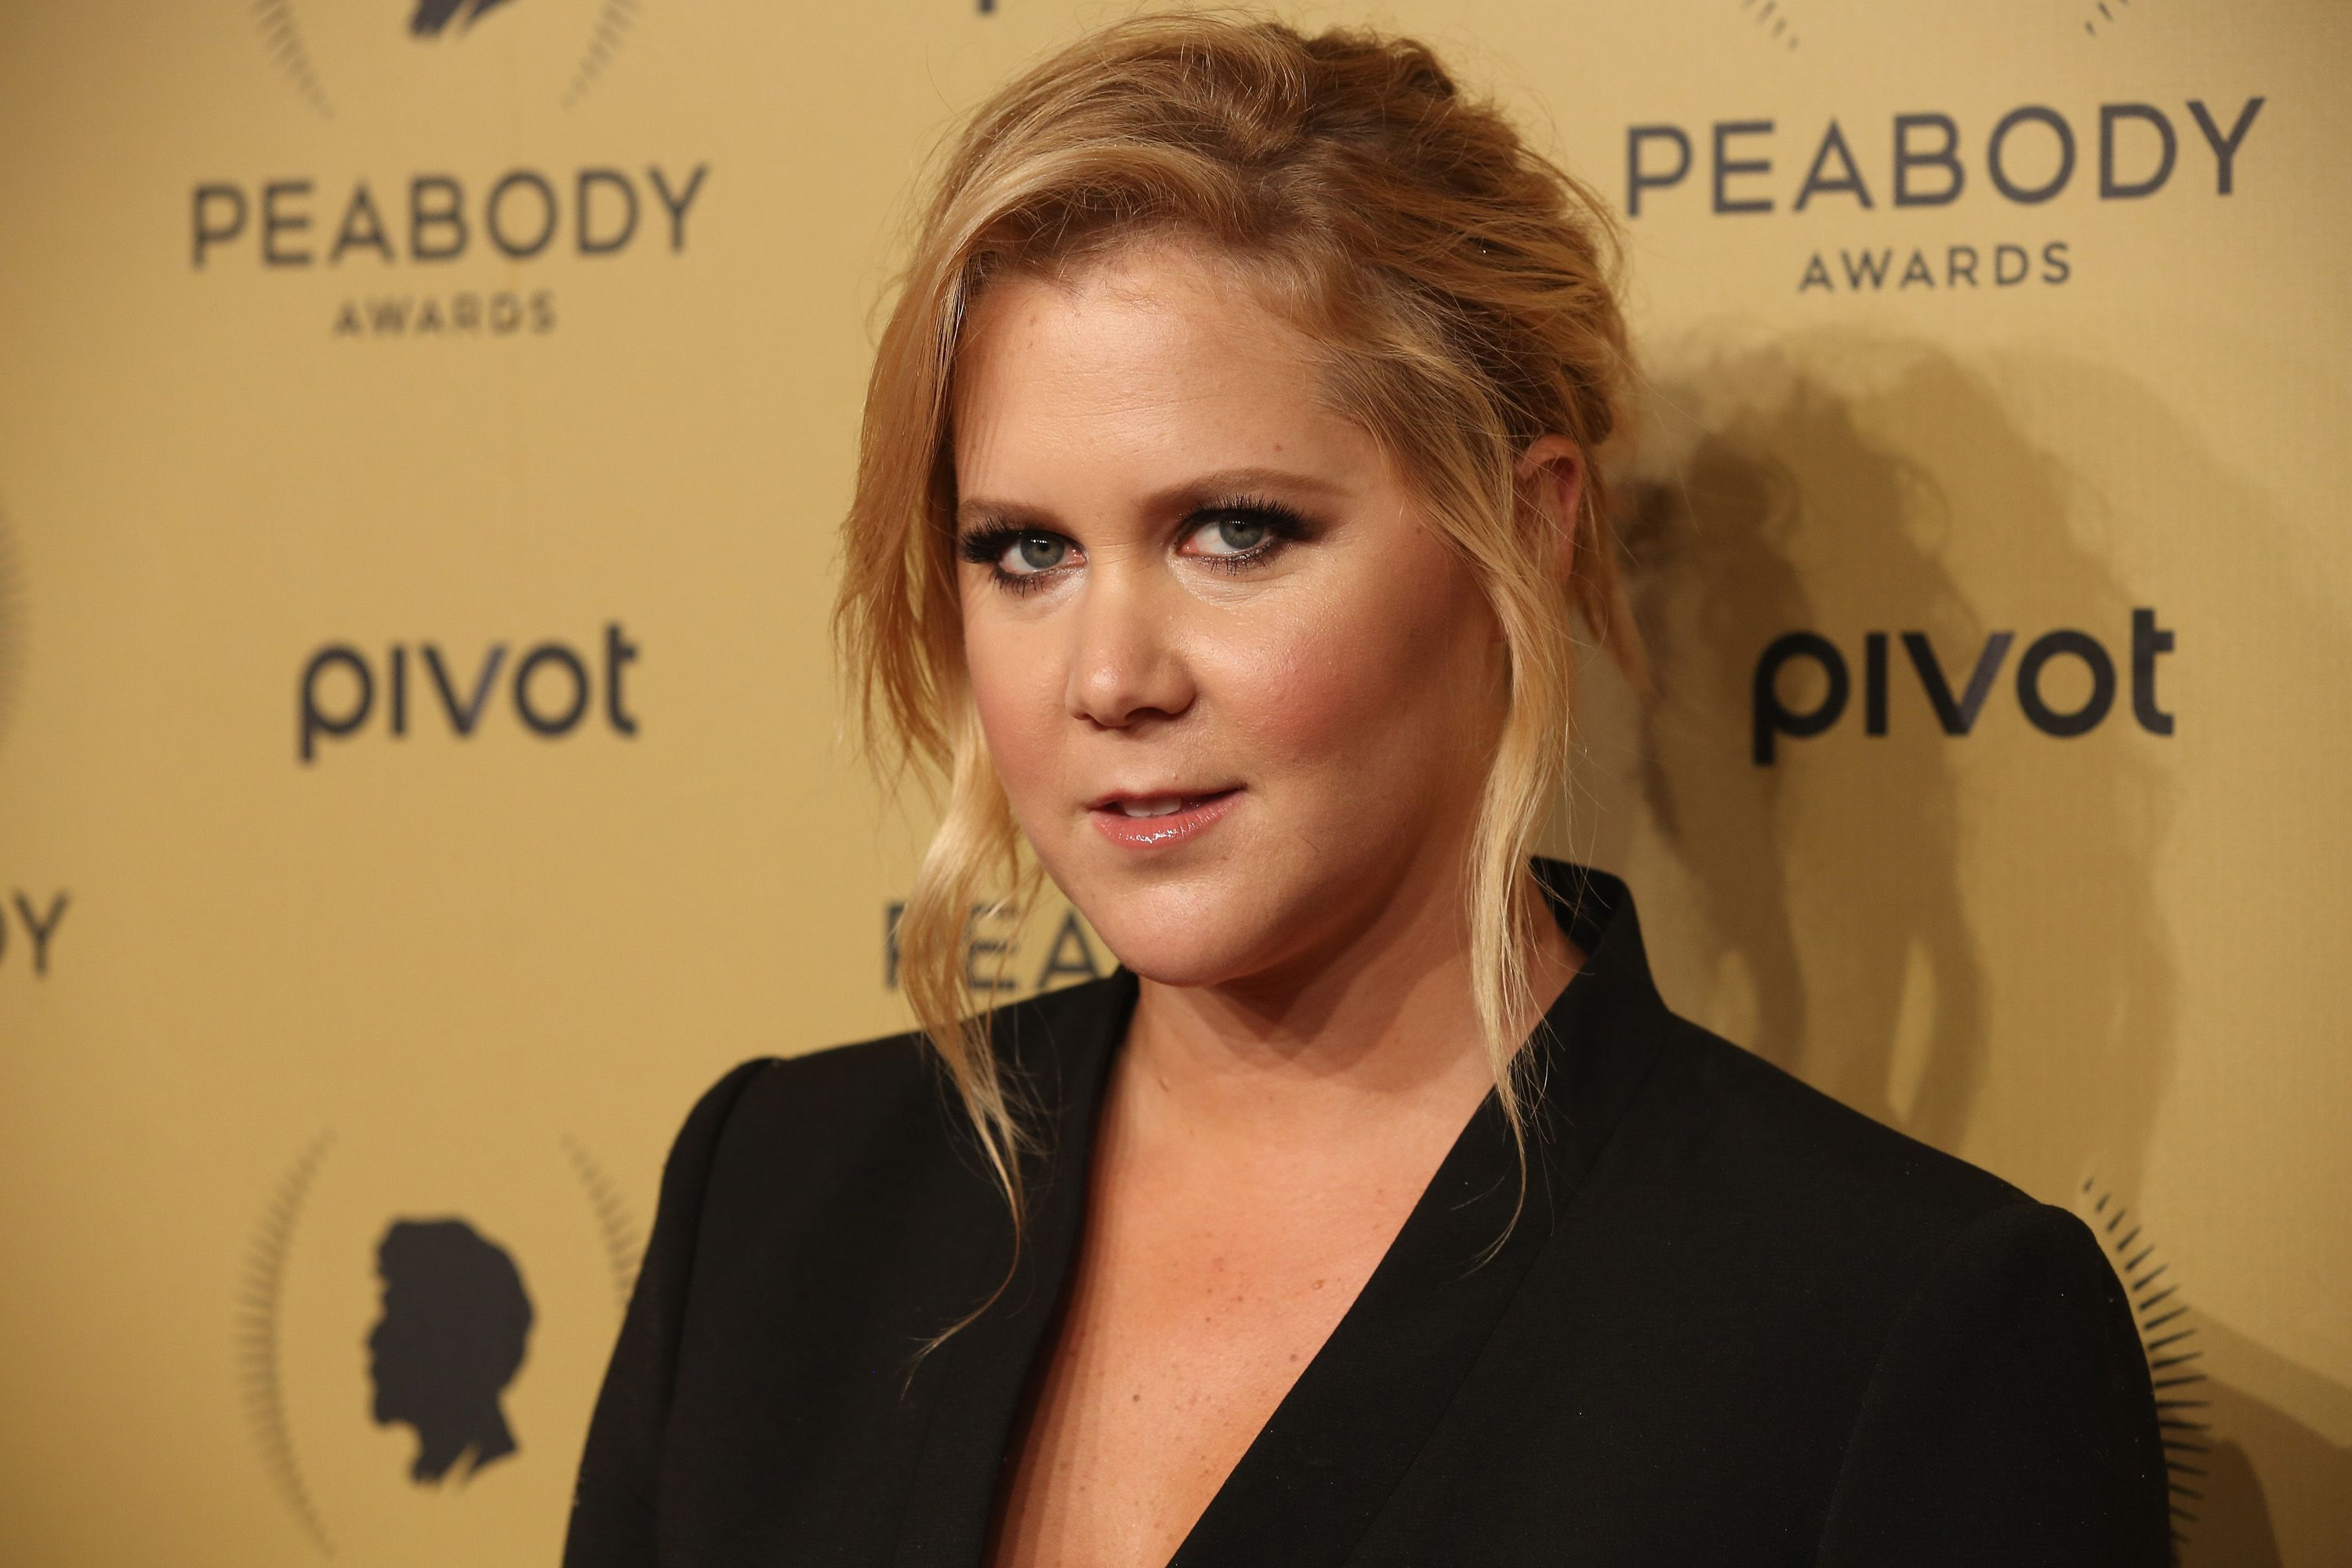 Amy Schumer at the 74th Annual Peabody Awards Ceremony at Cipriani Wall Street on May 31, 2015, in New York City | Photo: Jemal Countess/Getty Images